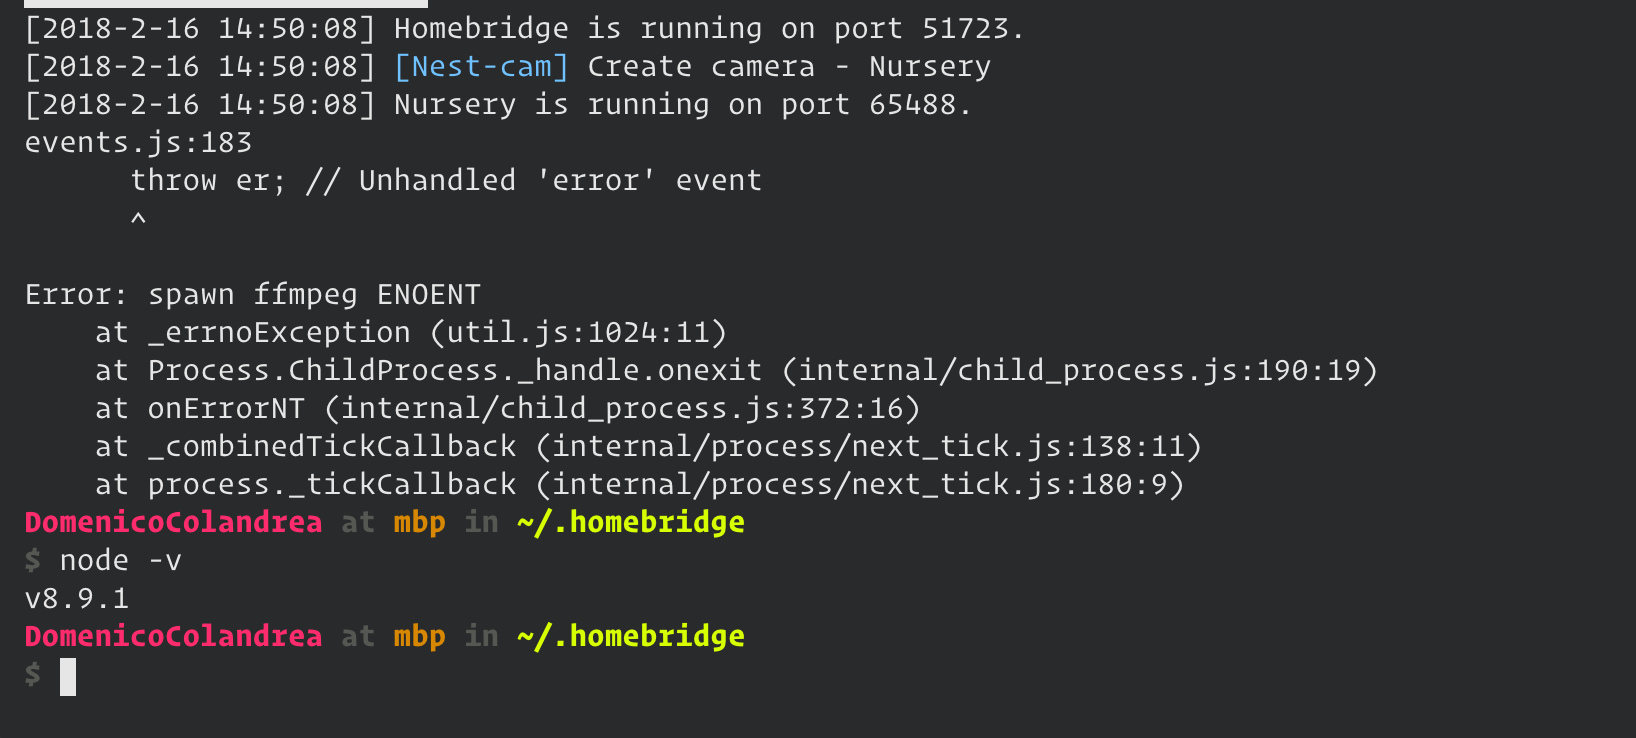 Unable to see live stream · Issue #6 · KhaosT/homebridge